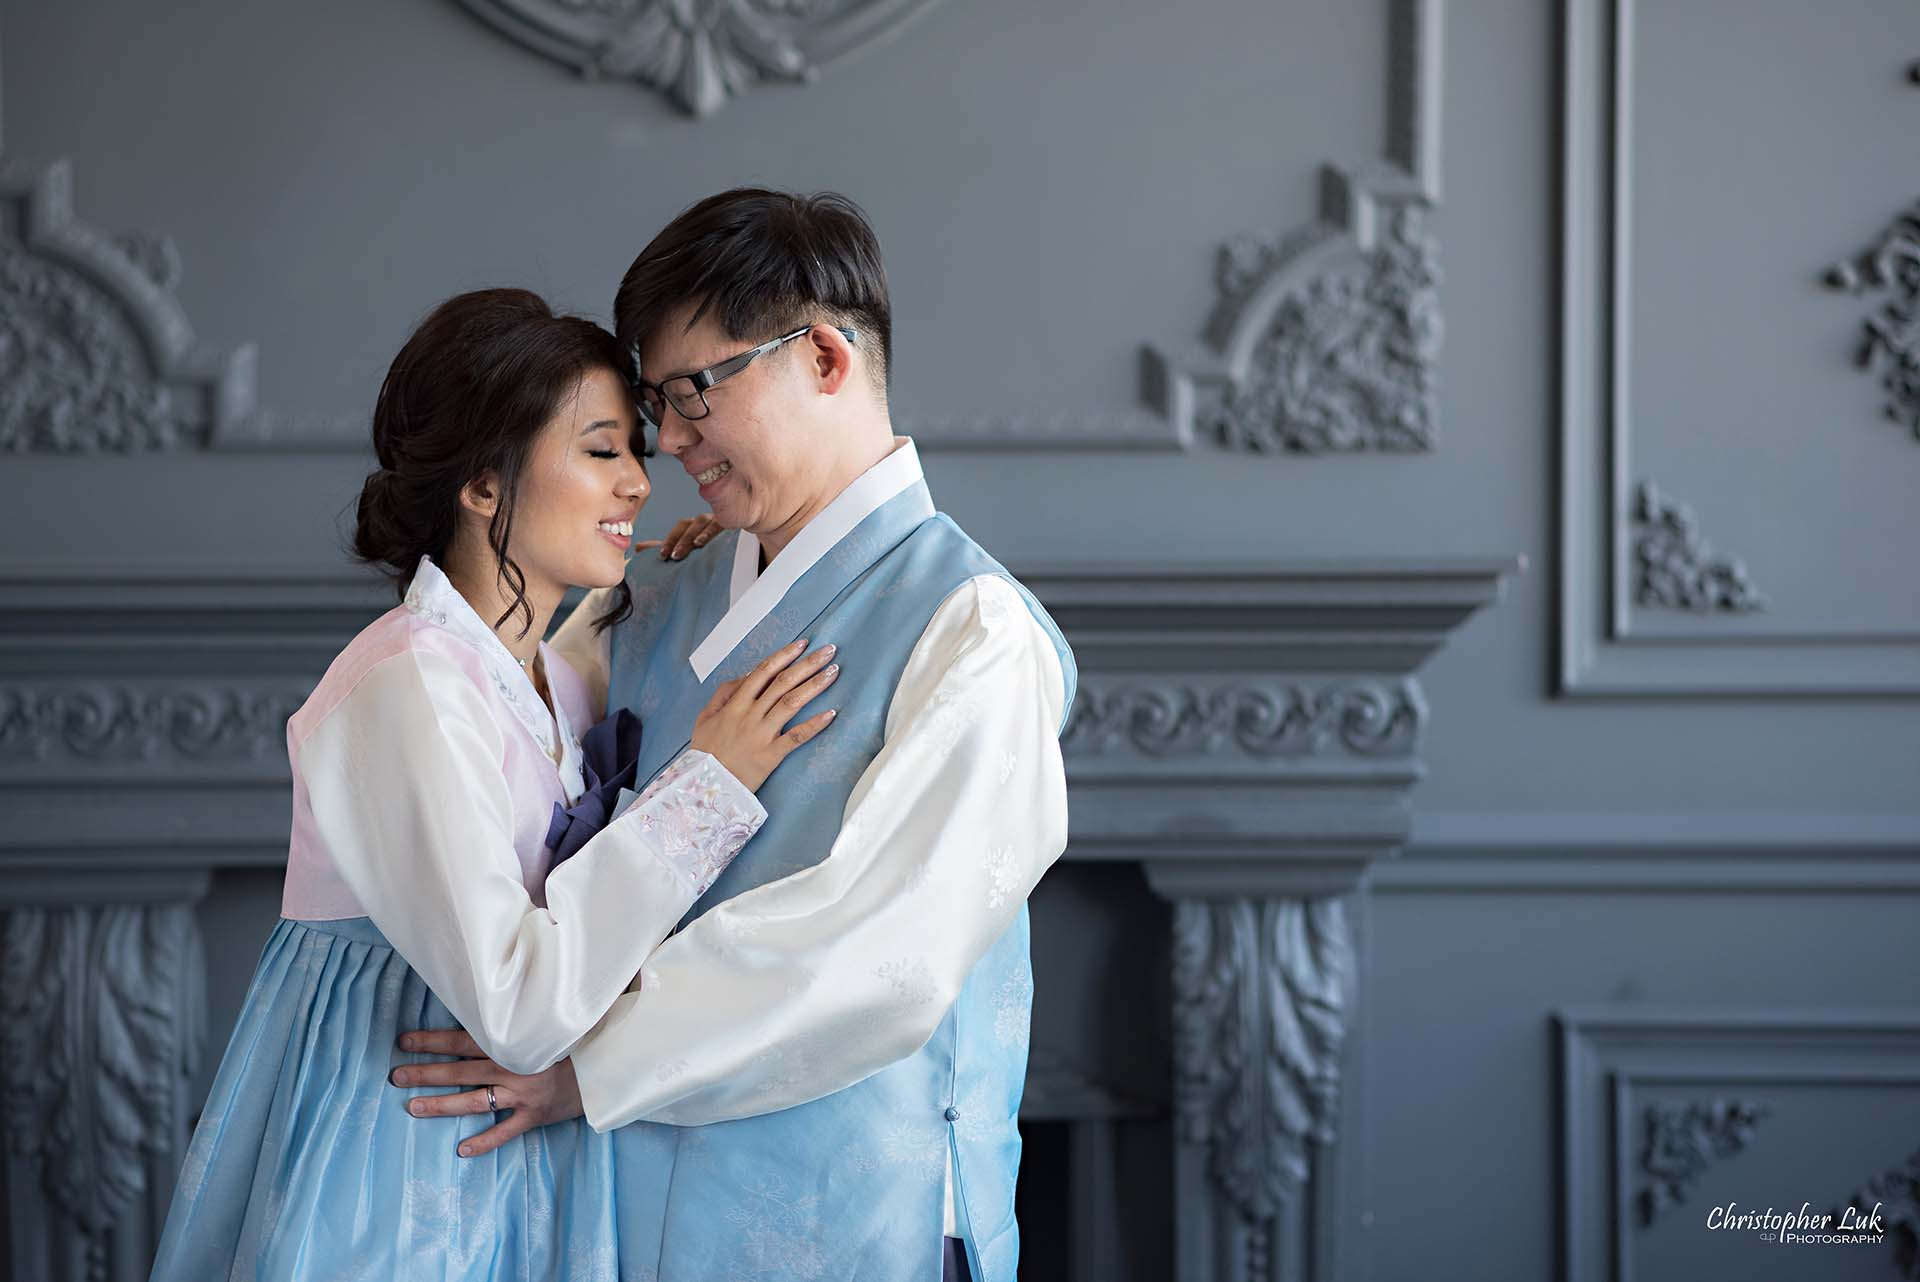 Christopher Luk Toronto Wedding Photographer - Mint Room Studios Bride Groom Natural Candid Photojournalistic Library Studio Korean Drama Hanbok Fireplace Hold Each Other Hug